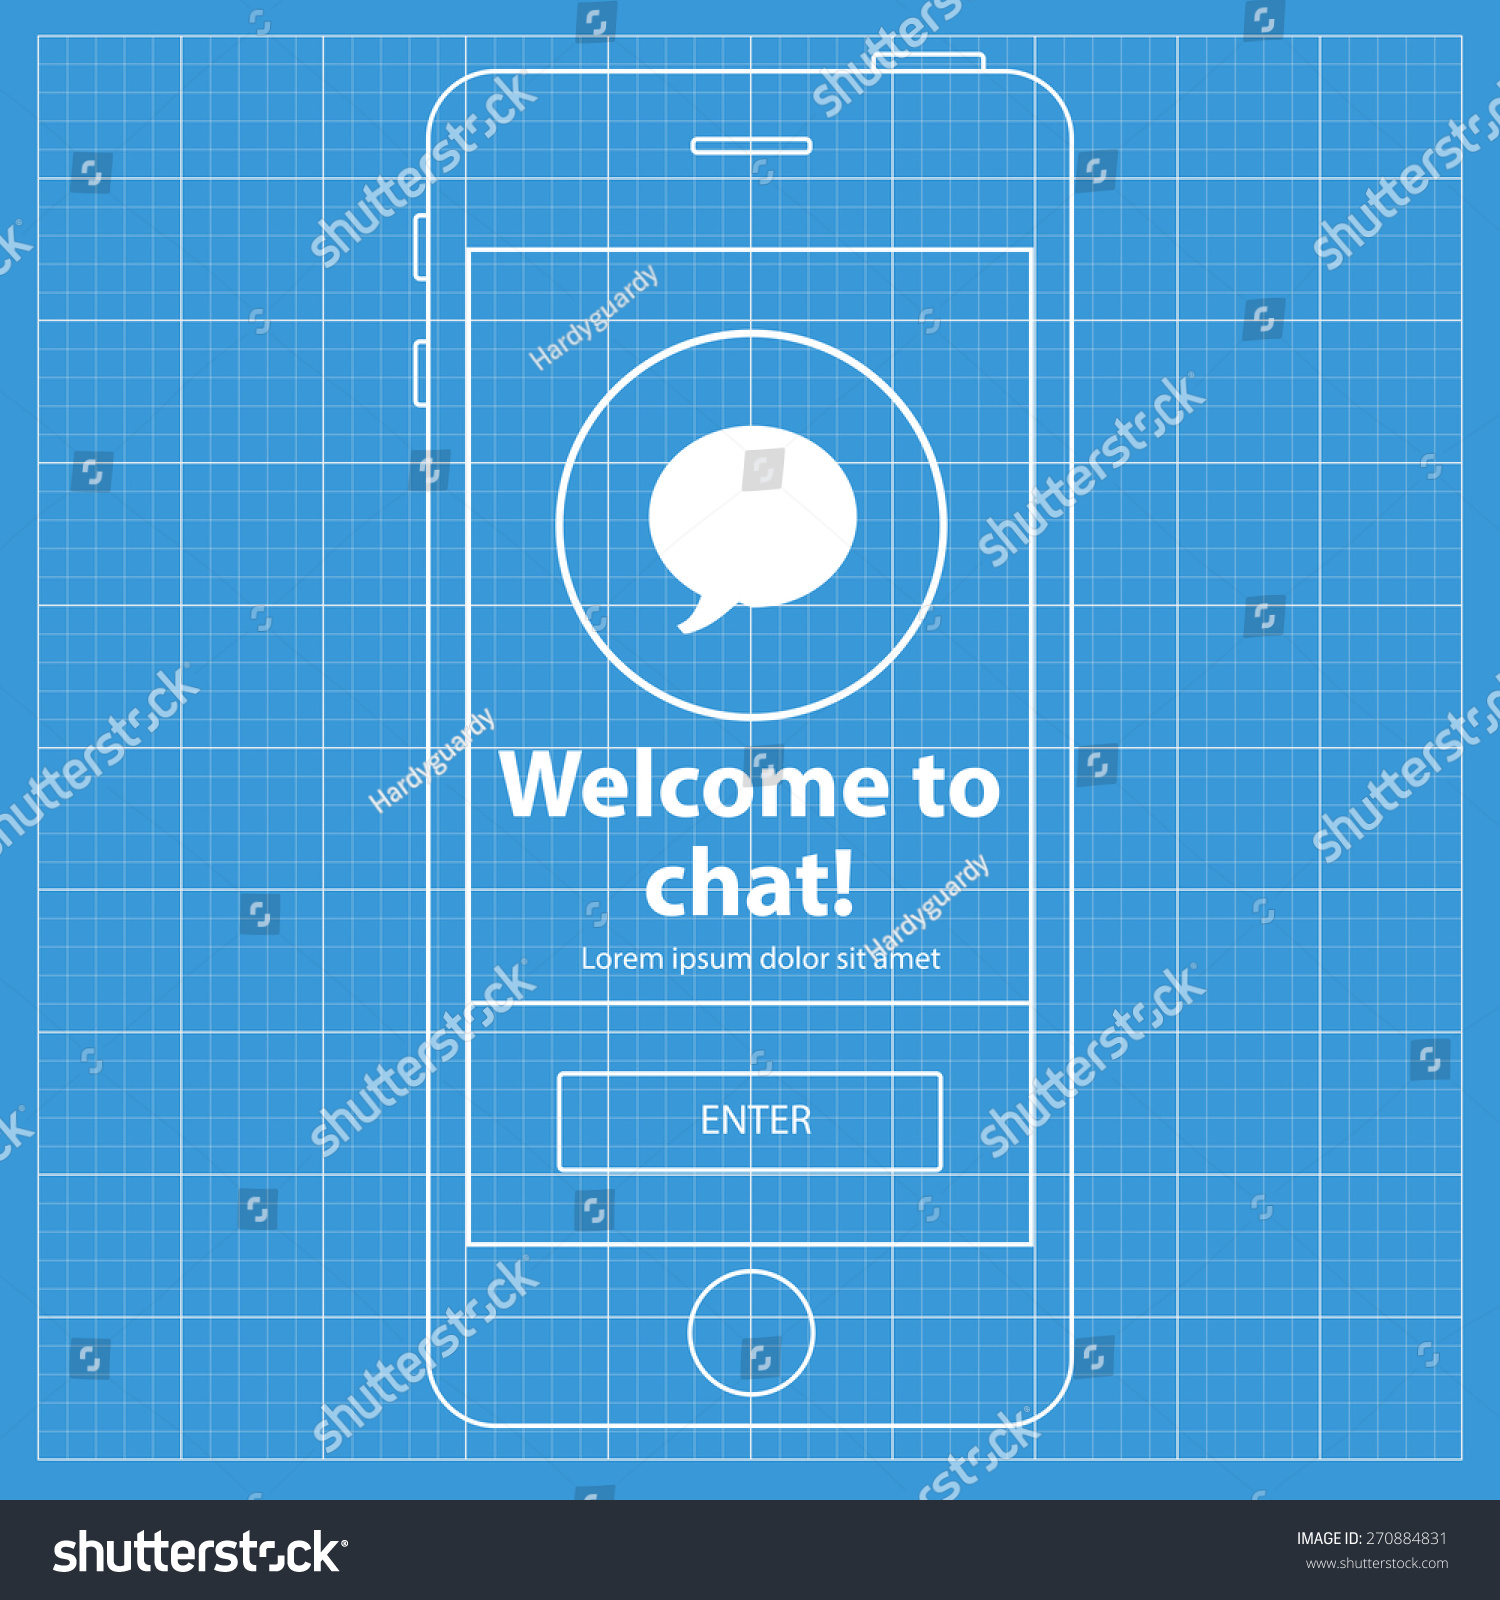 Mobile blueprint wireframe app screen welcome vectores en stock mobile blueprint wireframe app screen welcome to chat screen which can be used as a malvernweather Choice Image